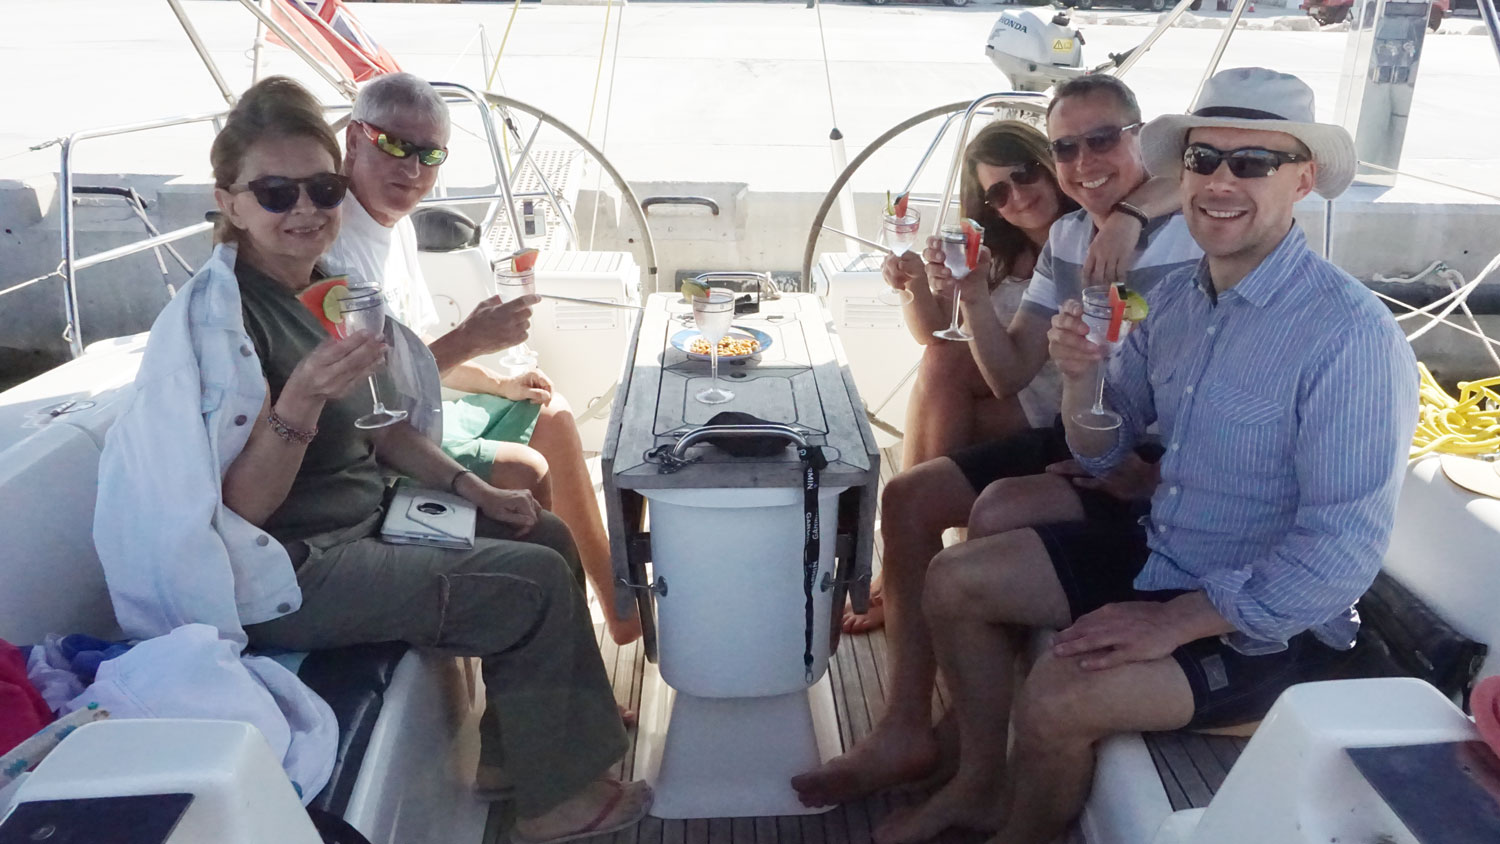 Homemade gin and tonics on the boat after docking with the crew - mmm!